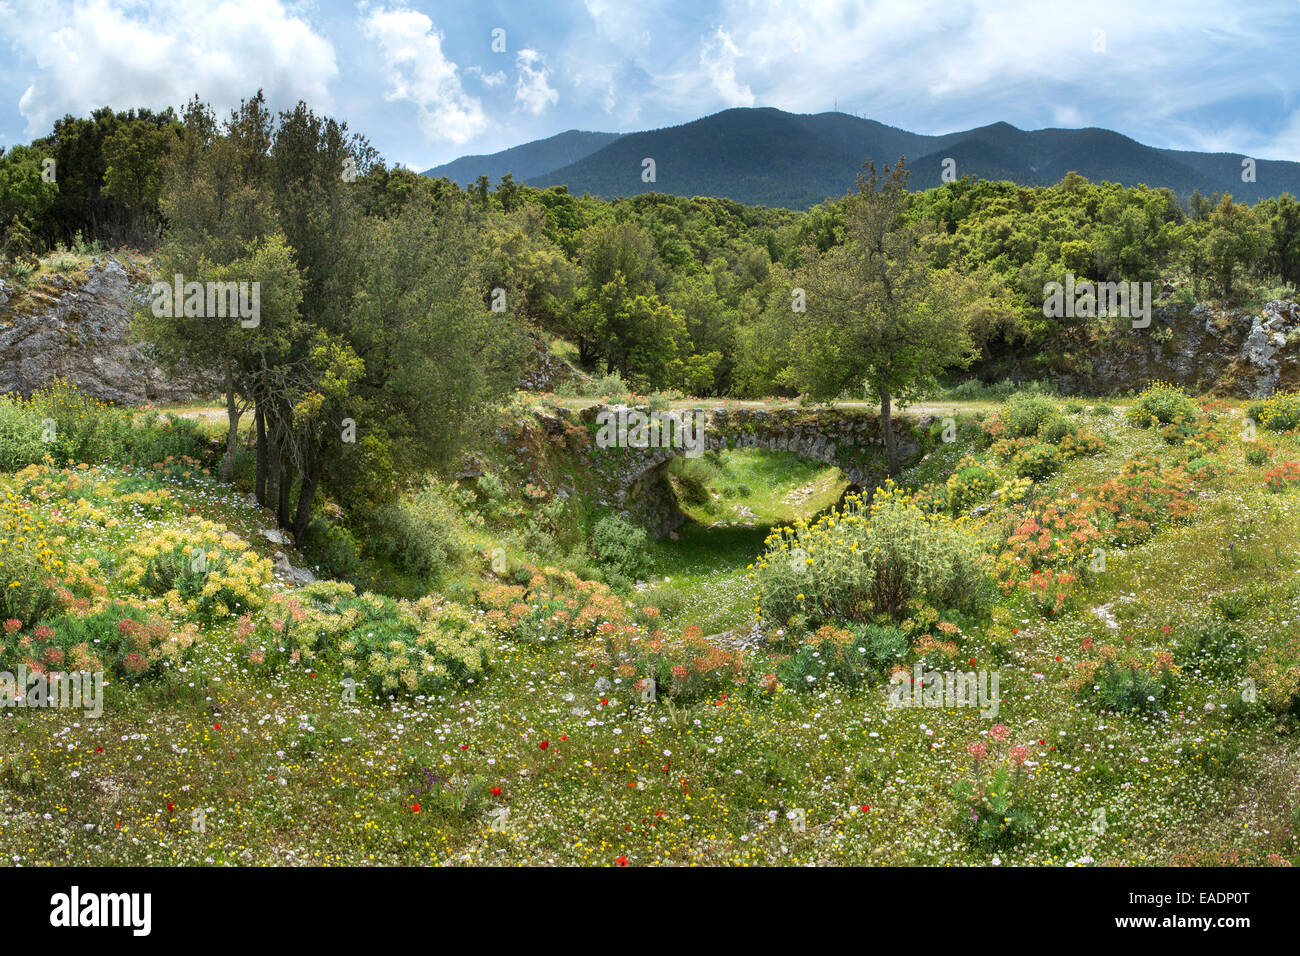 Beautiful wildflowers surround an old stone bridge near Digalet, Kefalonia. Mount Aenos can be seen in the background. Stock Photo